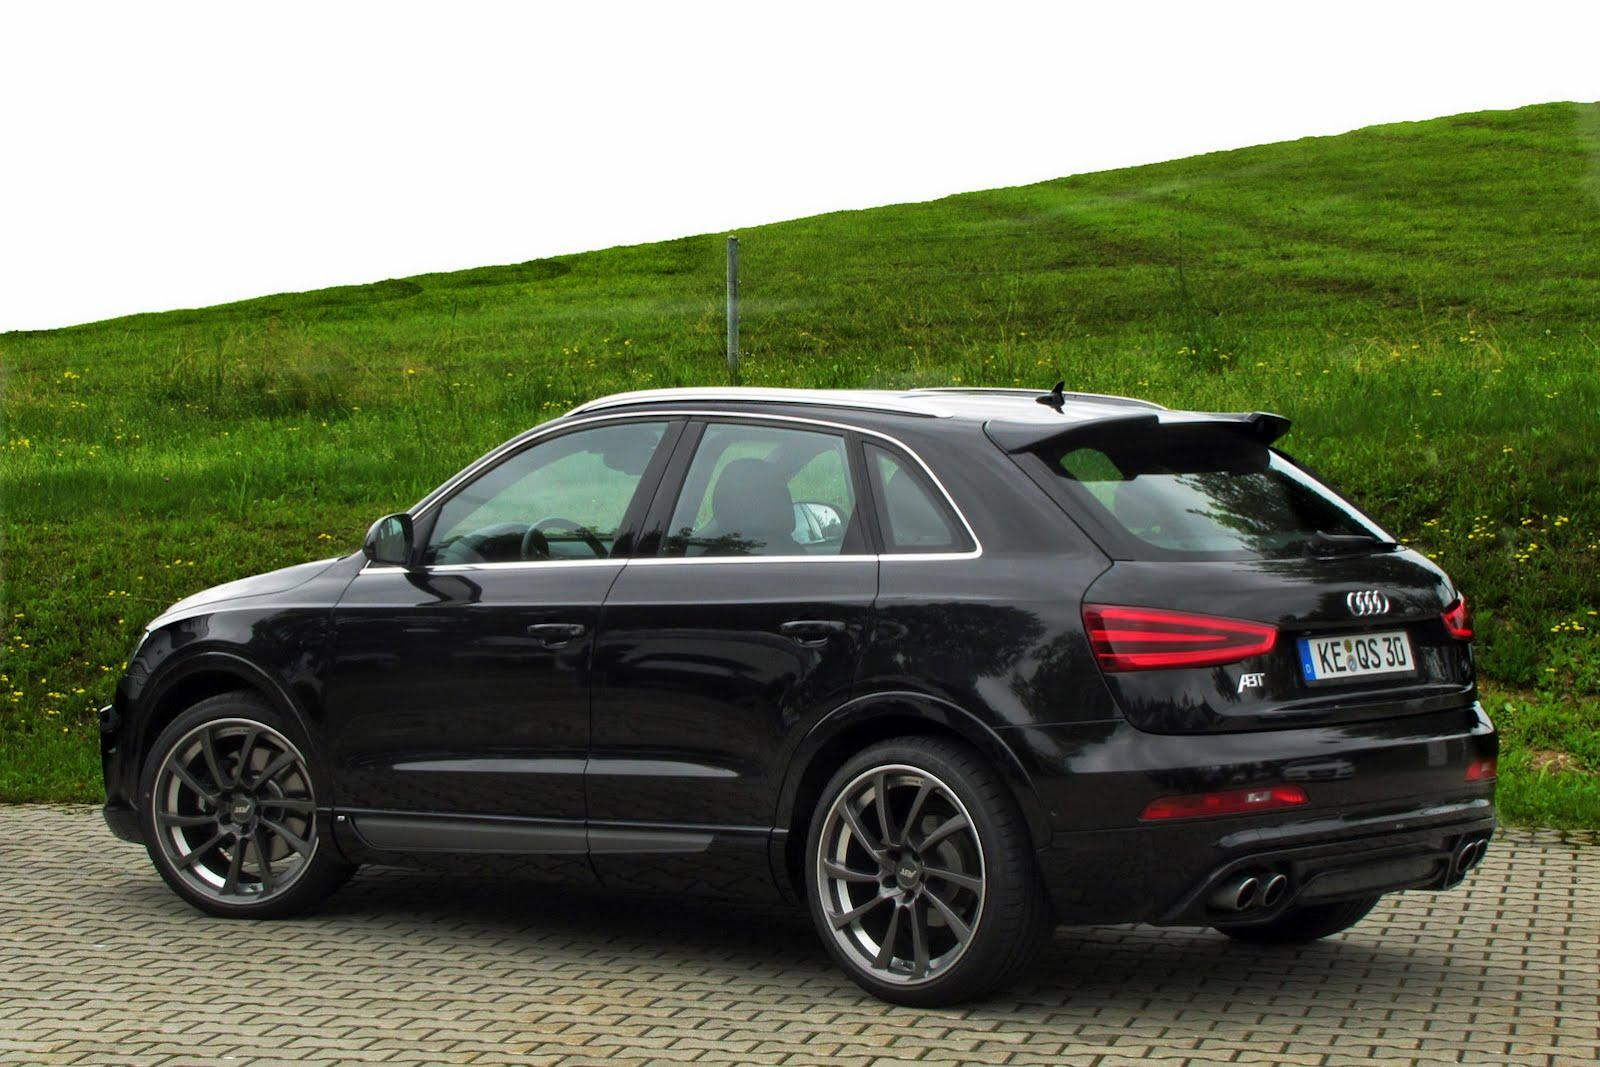 Audi Q3 by ABT Sportsline 2012 photo 82633 pictures at high resolution